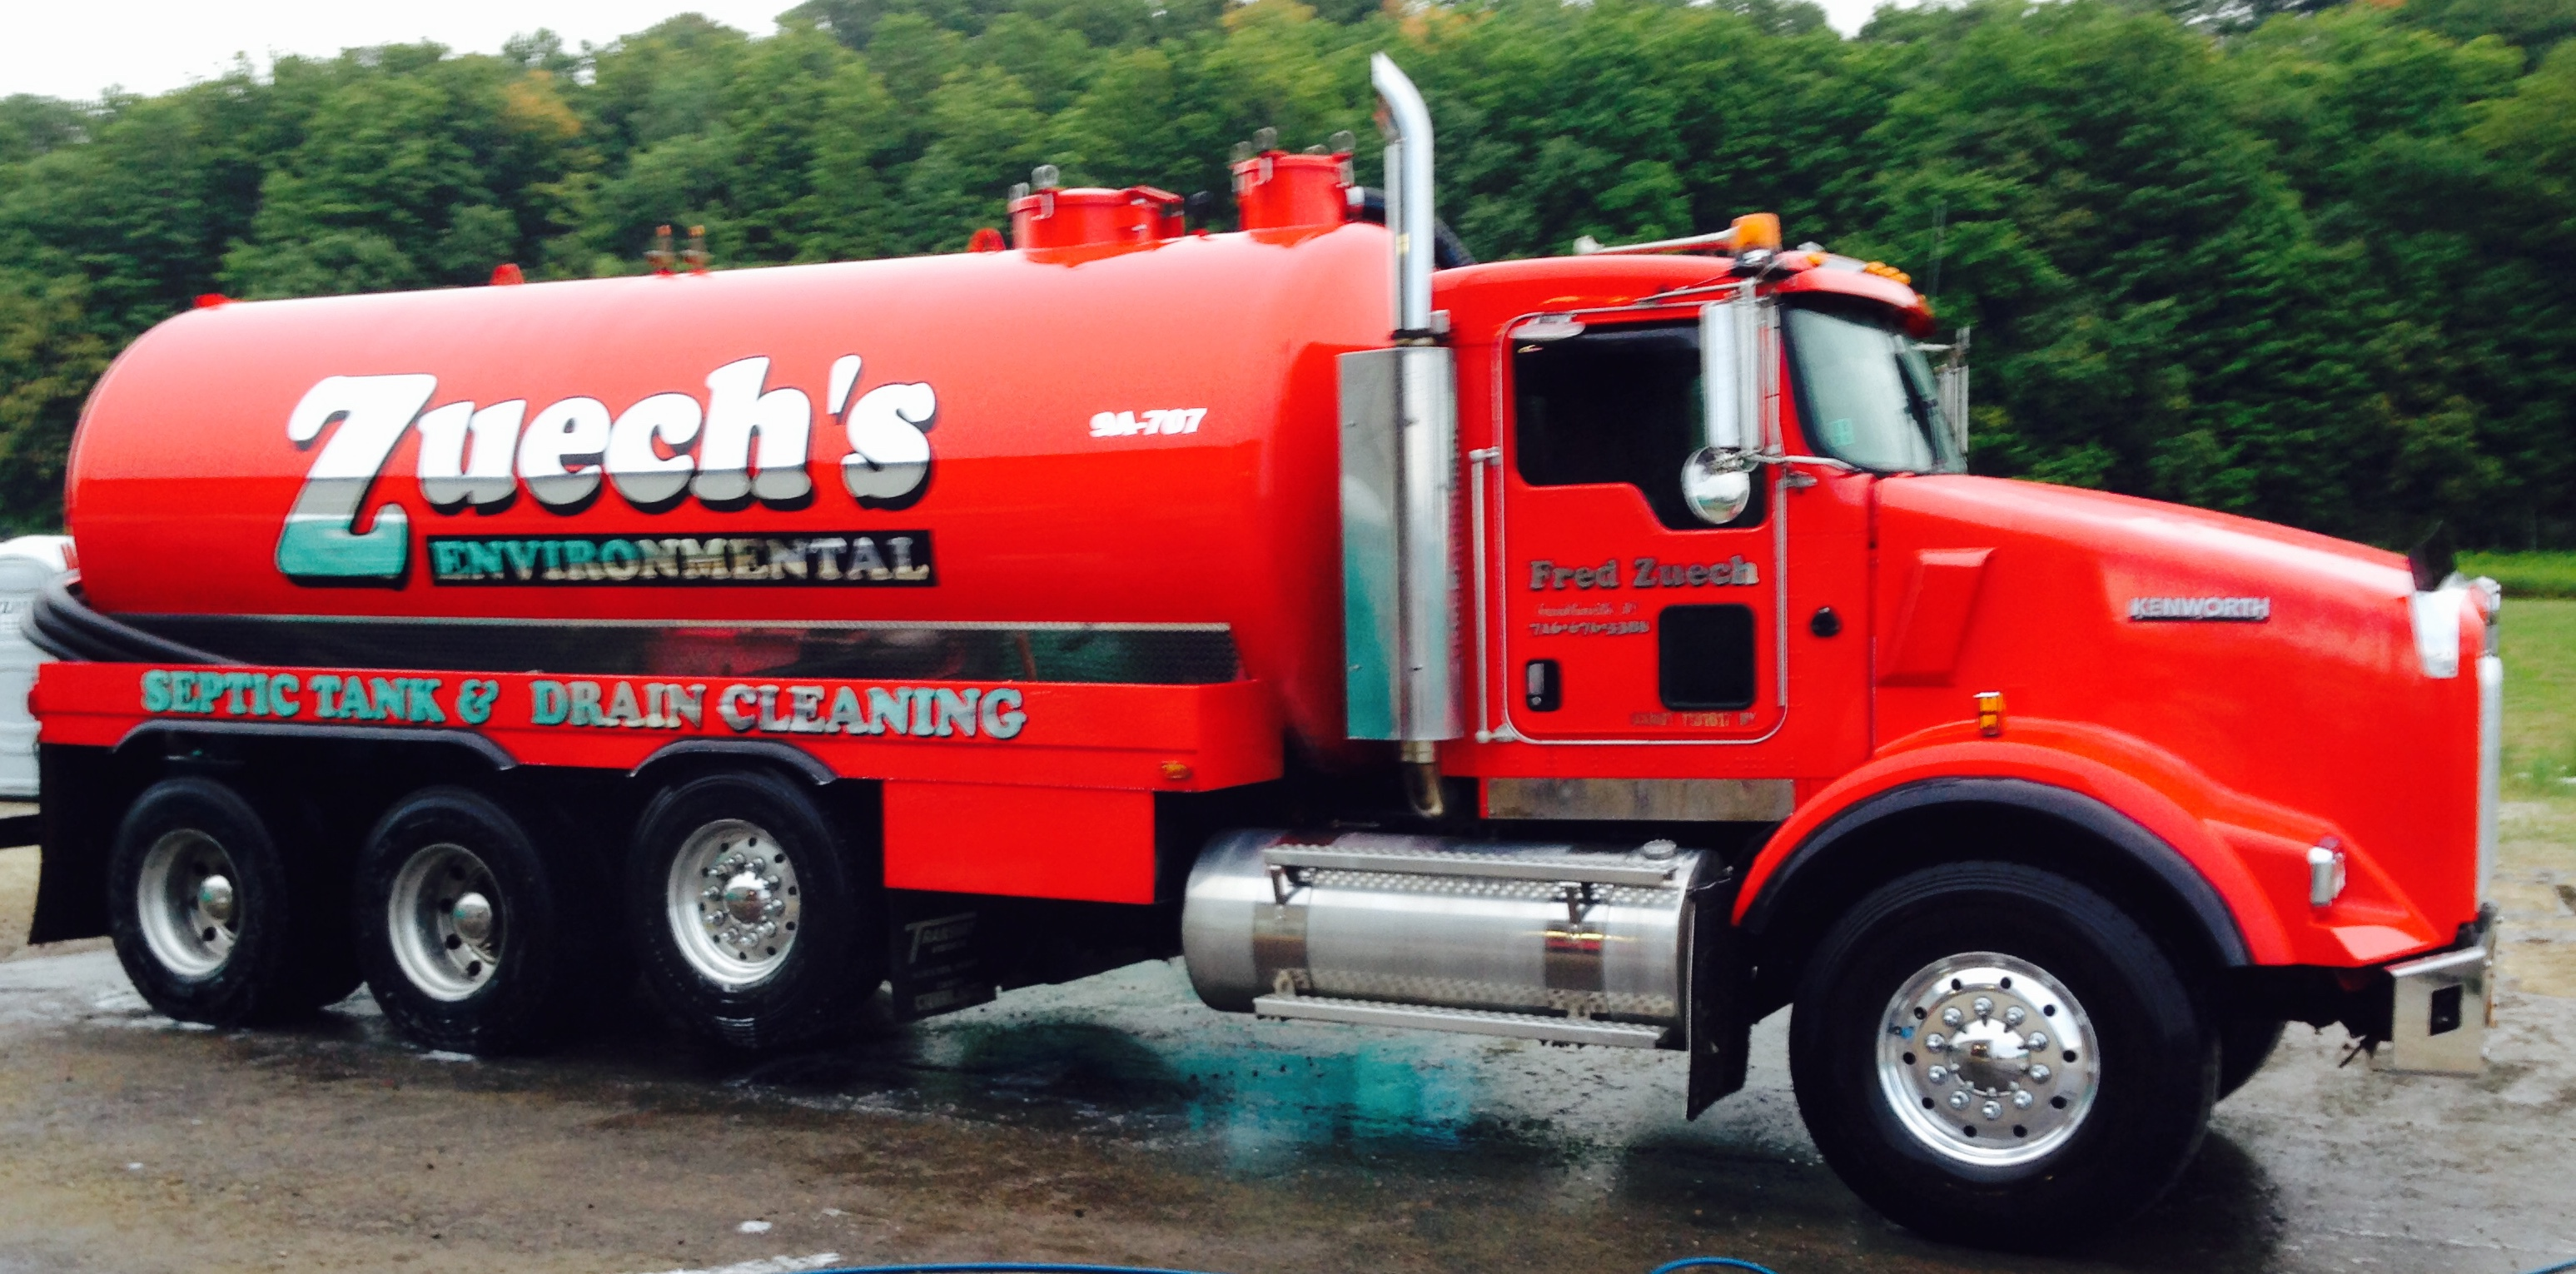 Septic Tank Pumping Olean, NY